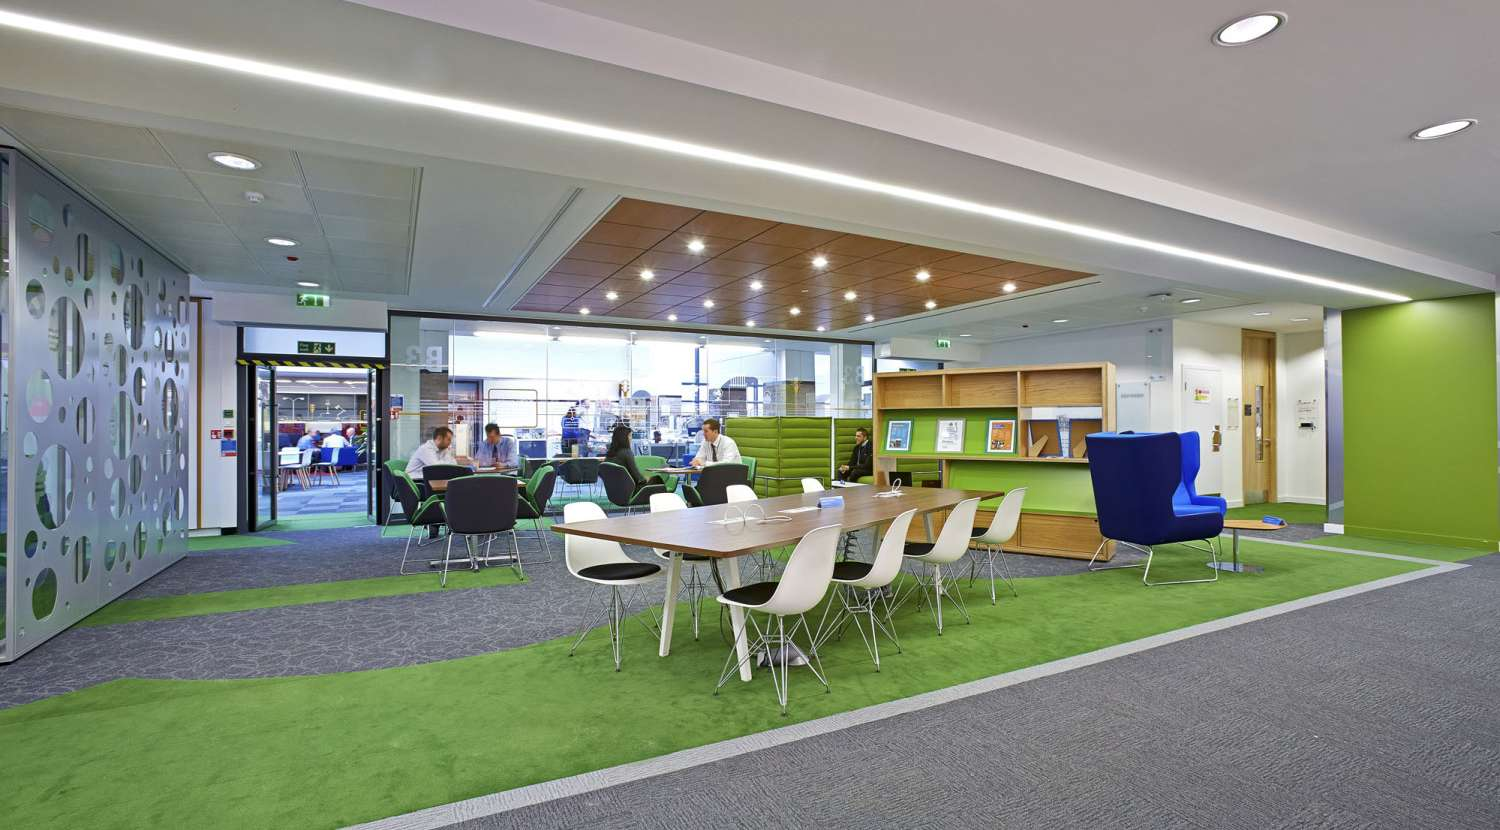 Informal Meeting Area With Green Carpet And Funky Seating